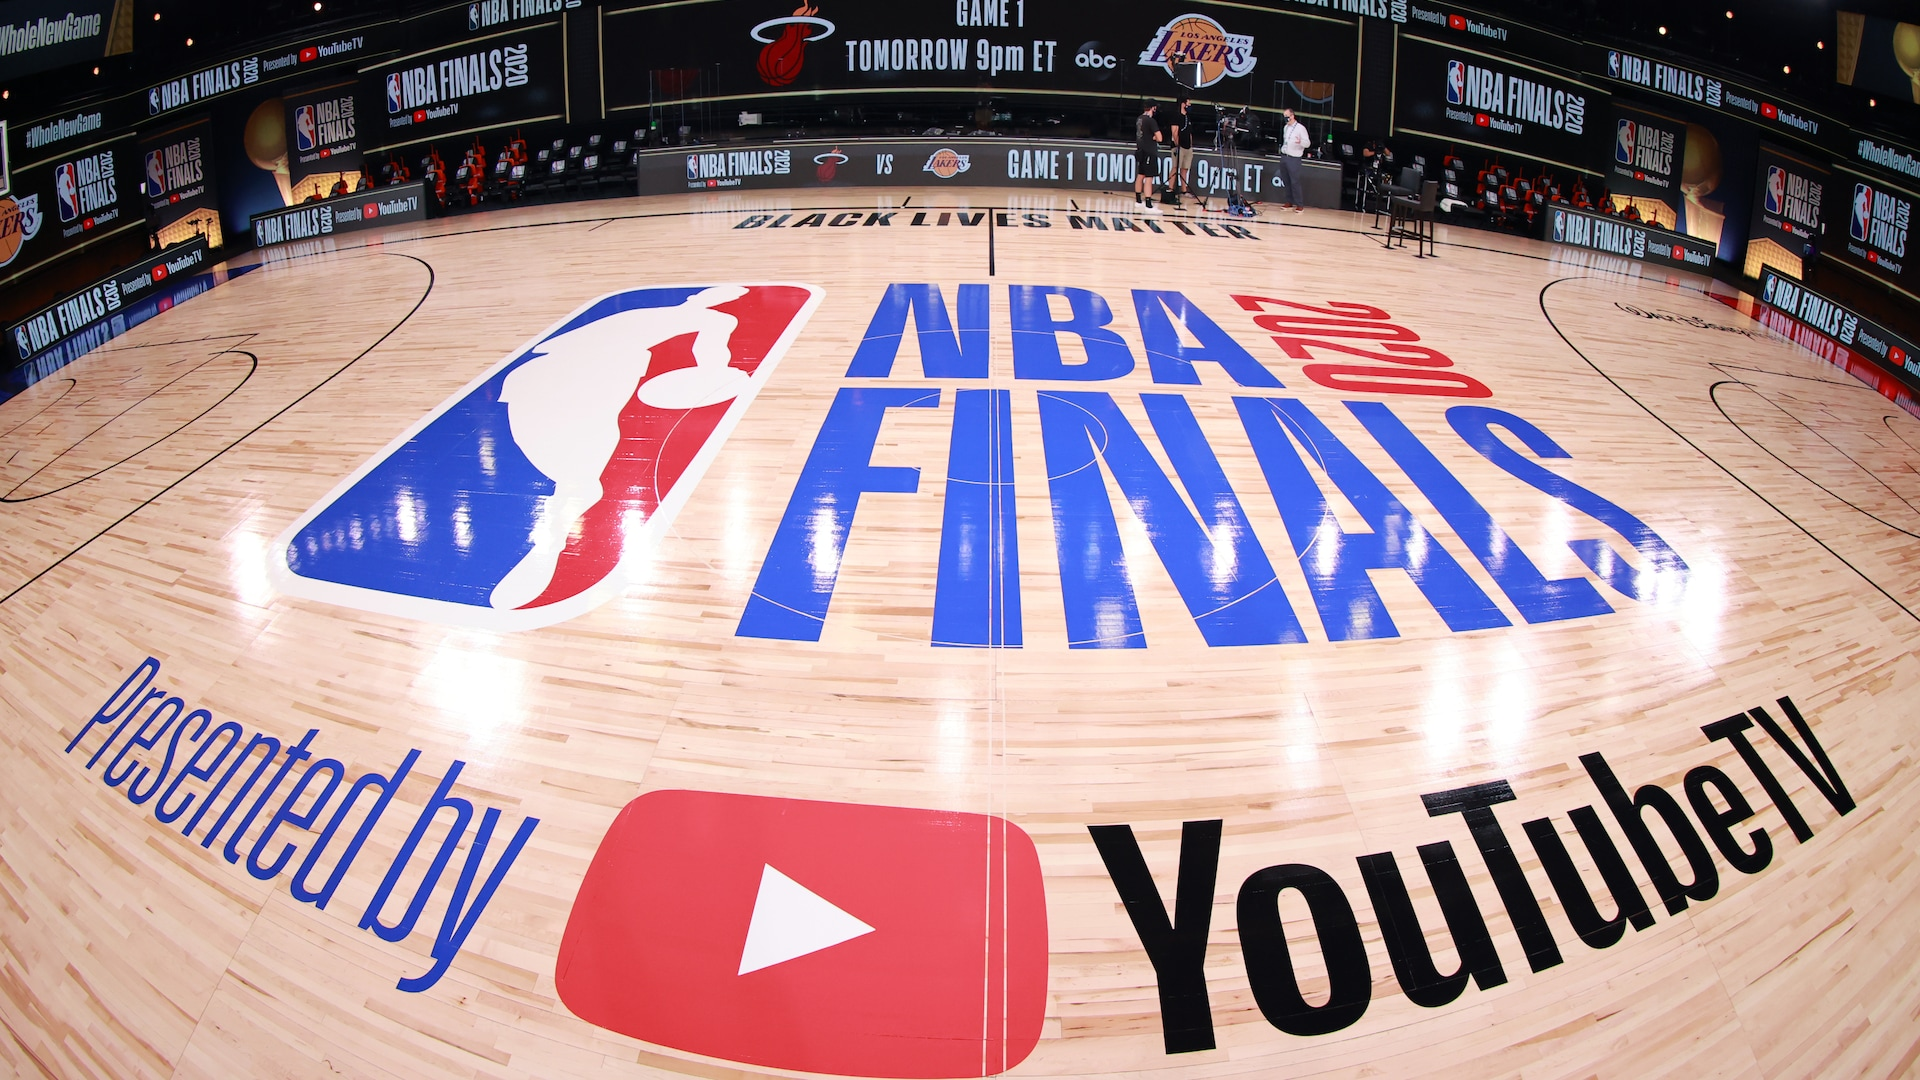 NBA announces 12 officials for The 2020 Finals